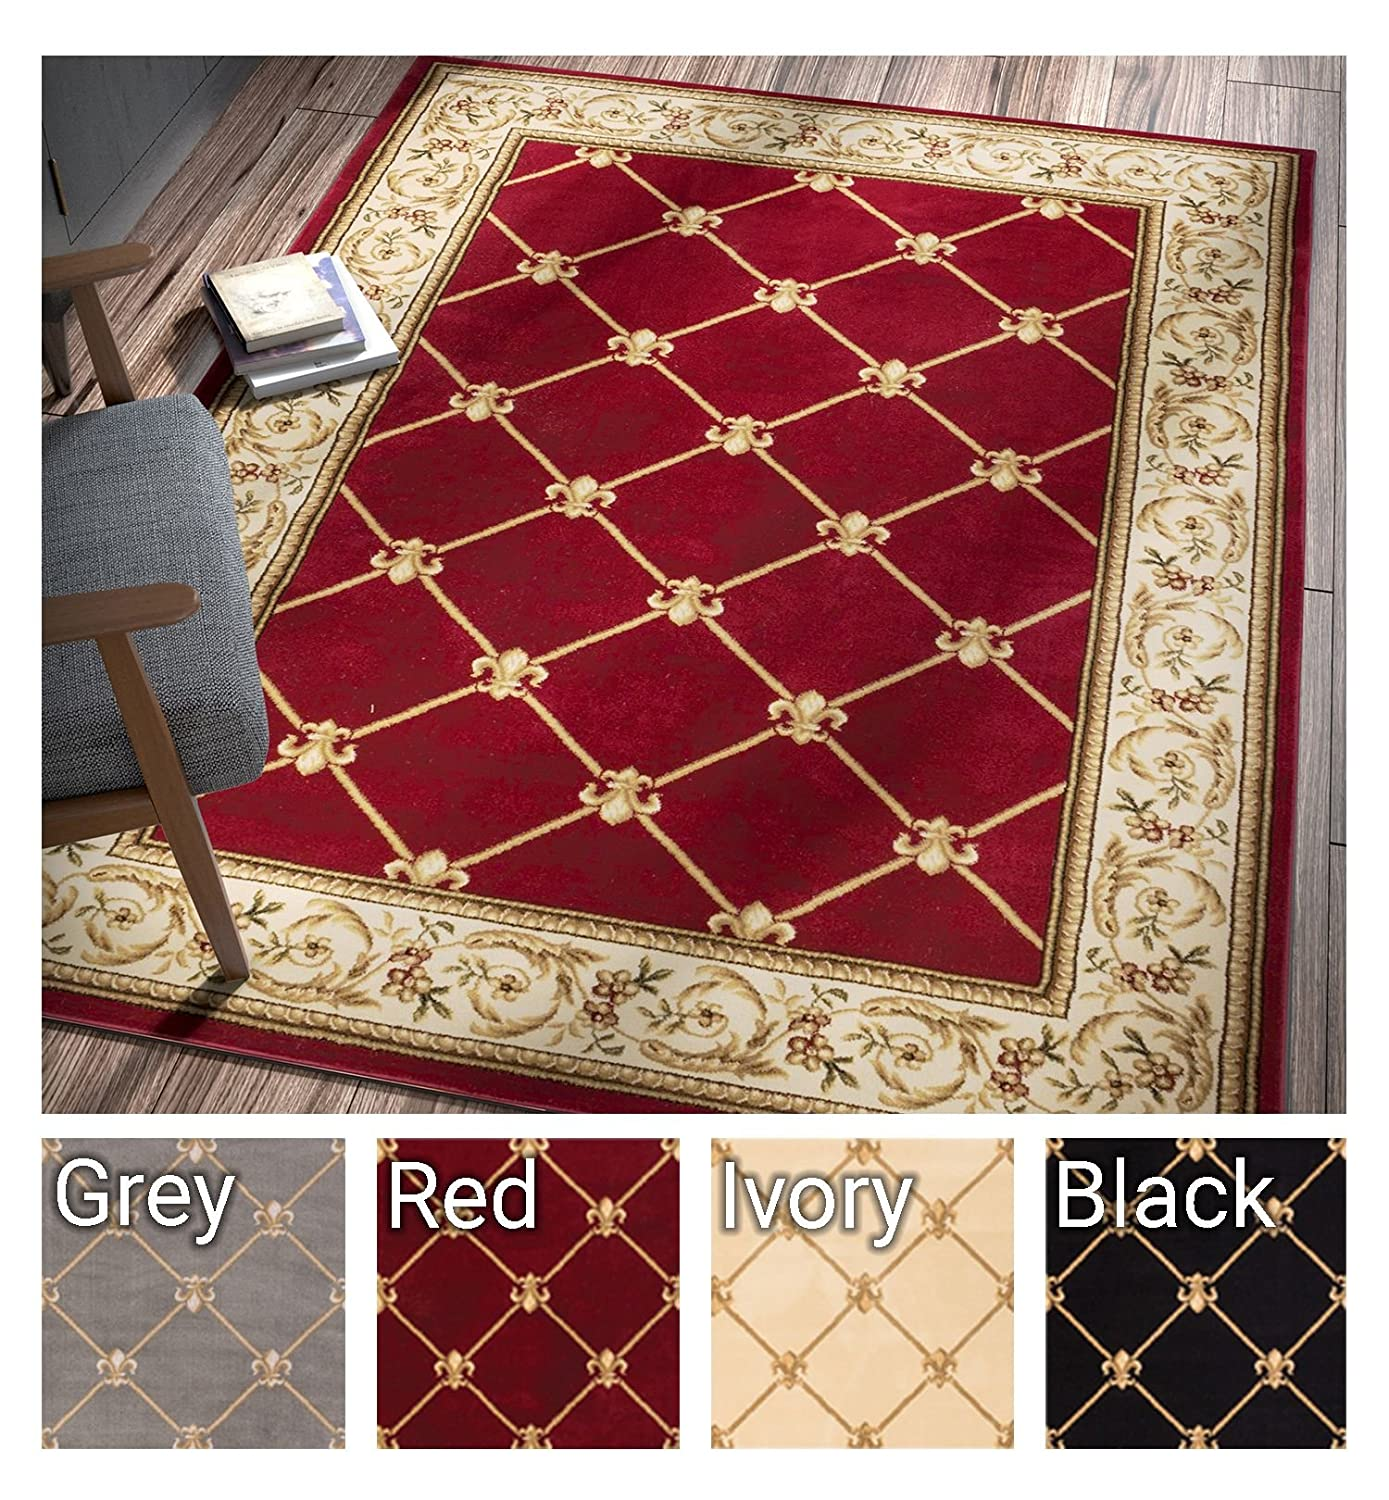 Patrician trellis red french european formal traditional 5x7 53 x 73 area rug easy to clean stain fade resistant shed free modern contemporary